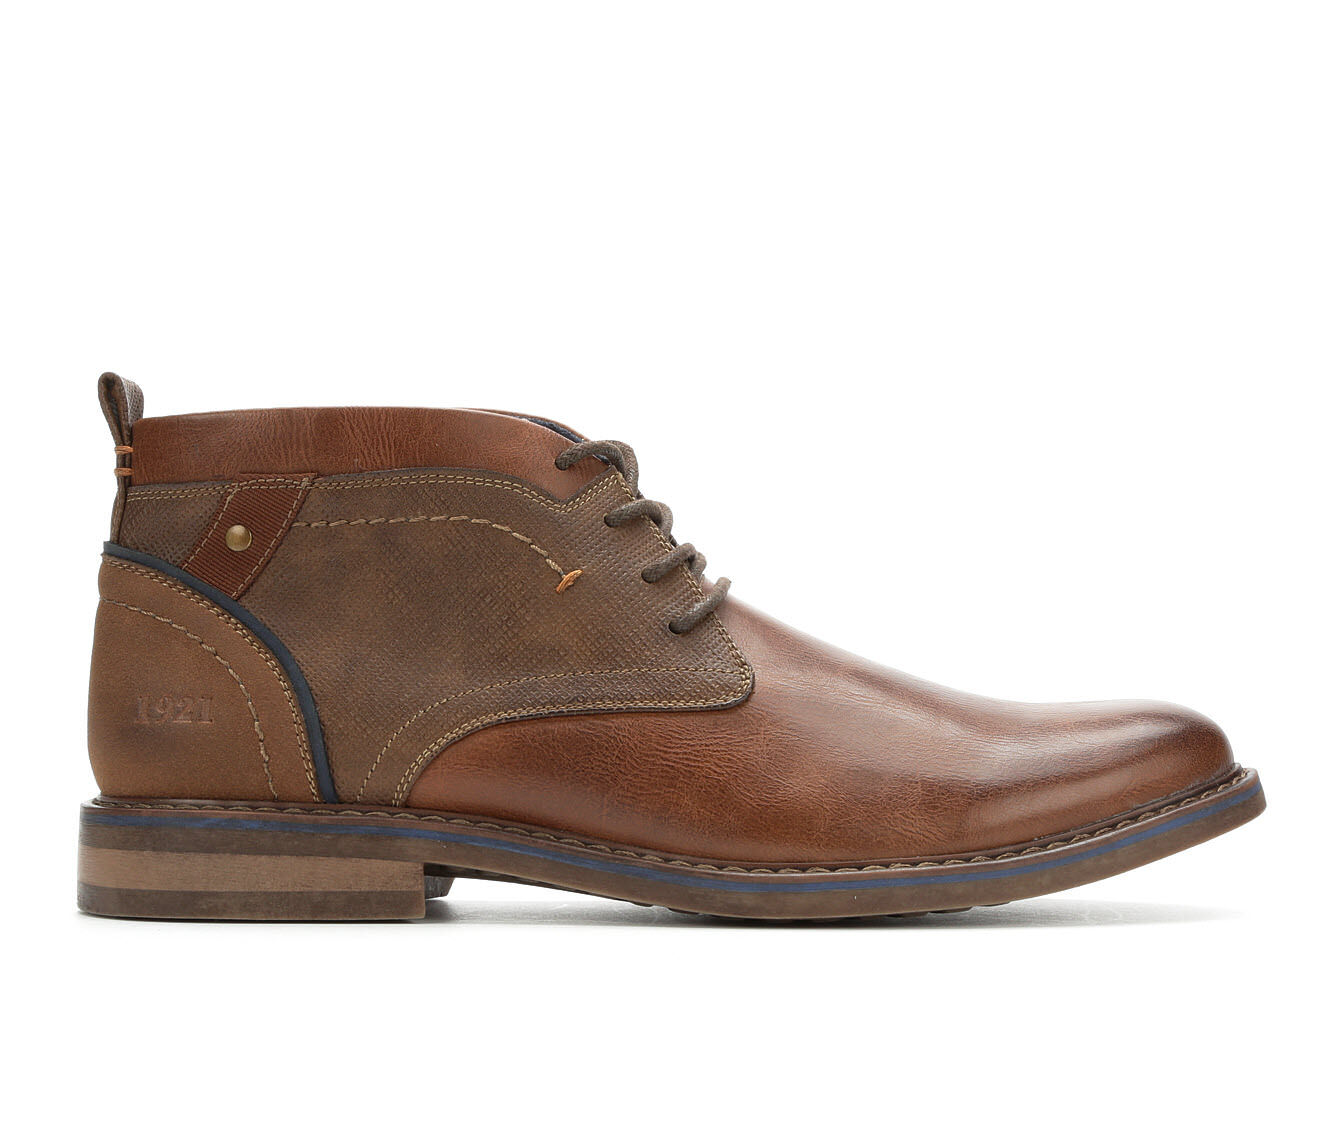 Promotional Men's Freeman Brent Chukka Boots Tan